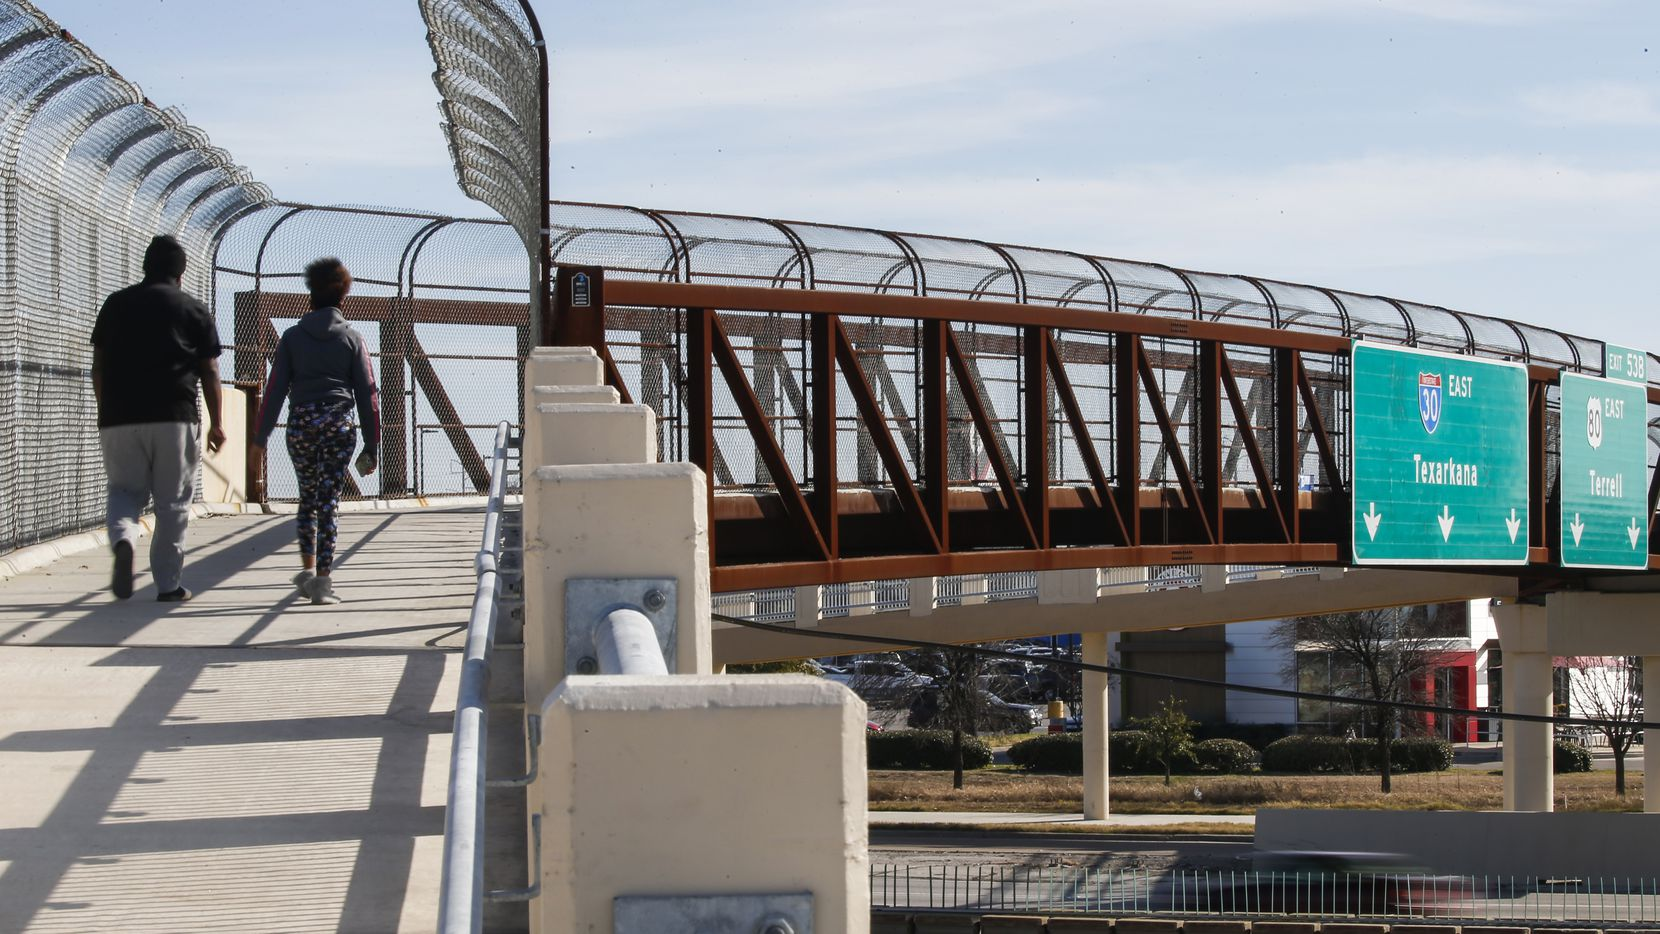 Pedestrians use the walking bridge over Interstate 30. The nearby St. Francis Avenue bridge has no dedicated walking lanes. The Texas Department of Transportation says the pedestrian bridge was built as a safer way to cross the interstate.